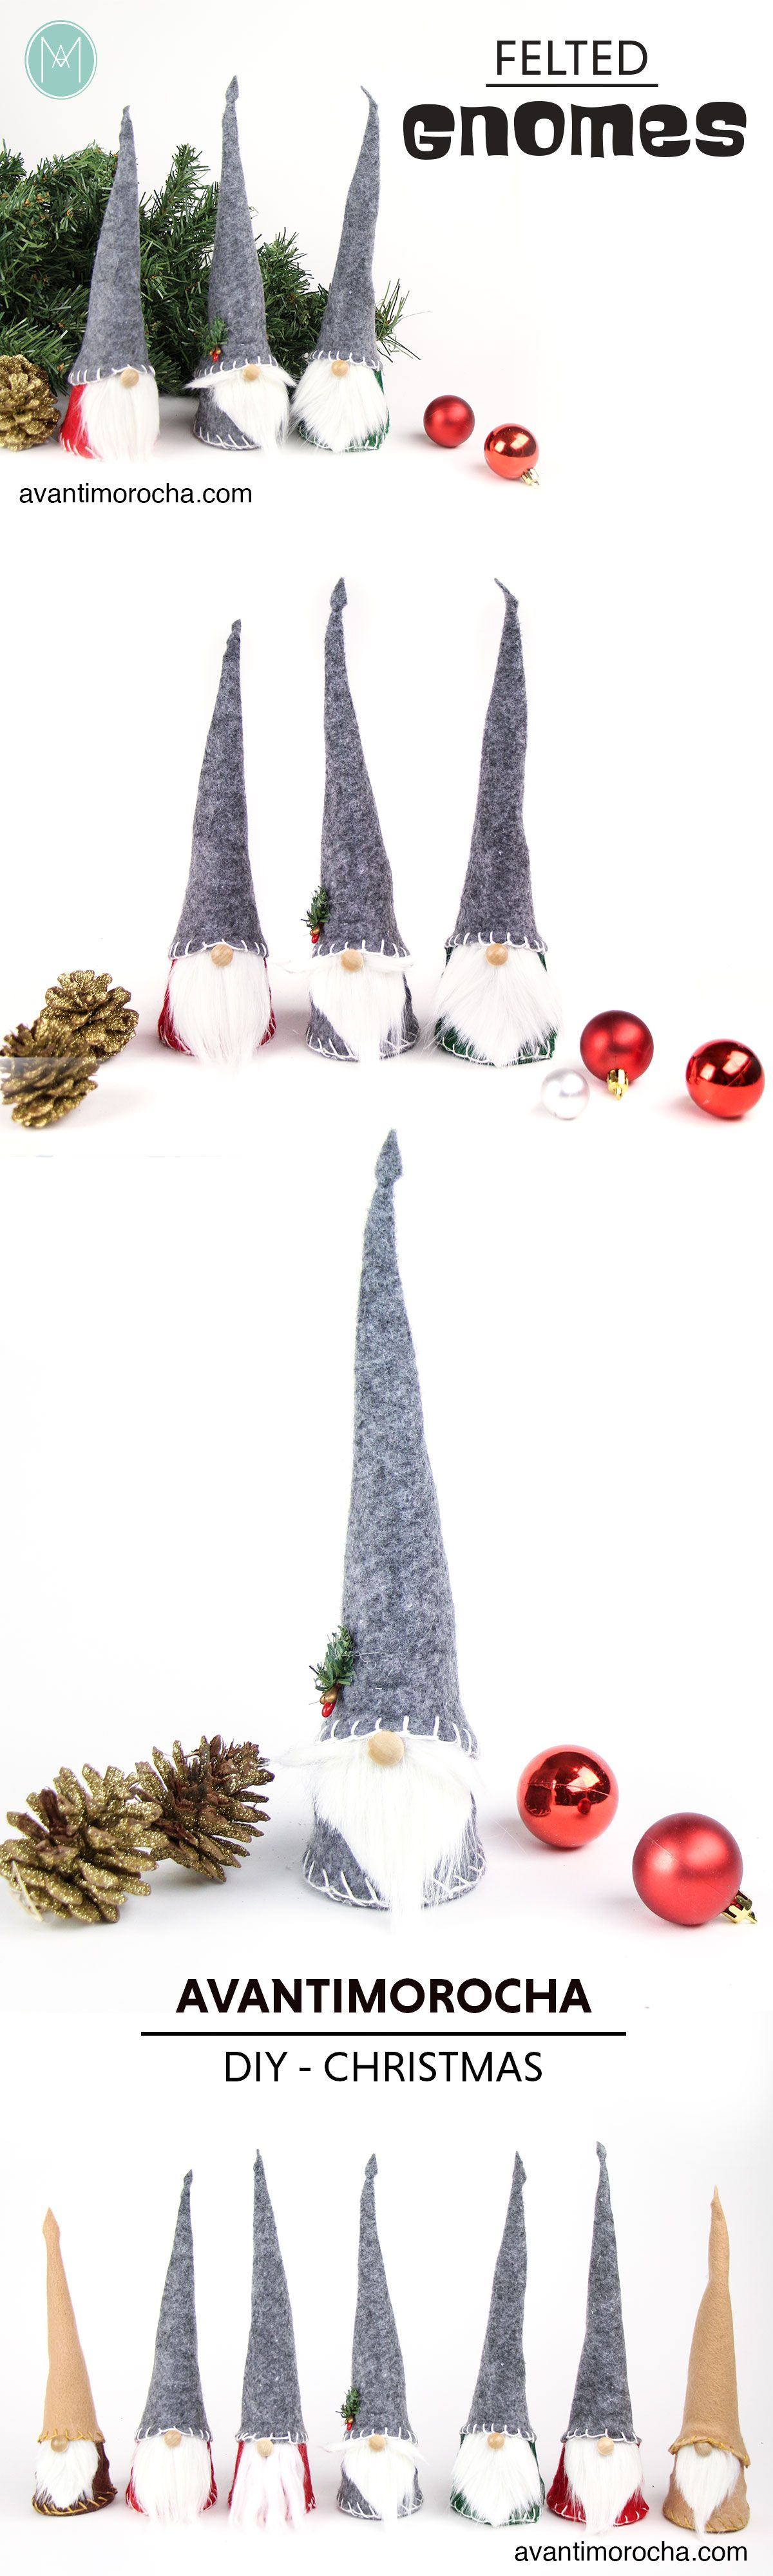 Diy Felted Gnomes Christmas Diy Gnomos De Fieltro Navidad Felt Christmas Ornaments Xmas Crafts Felt Christmas Decorations